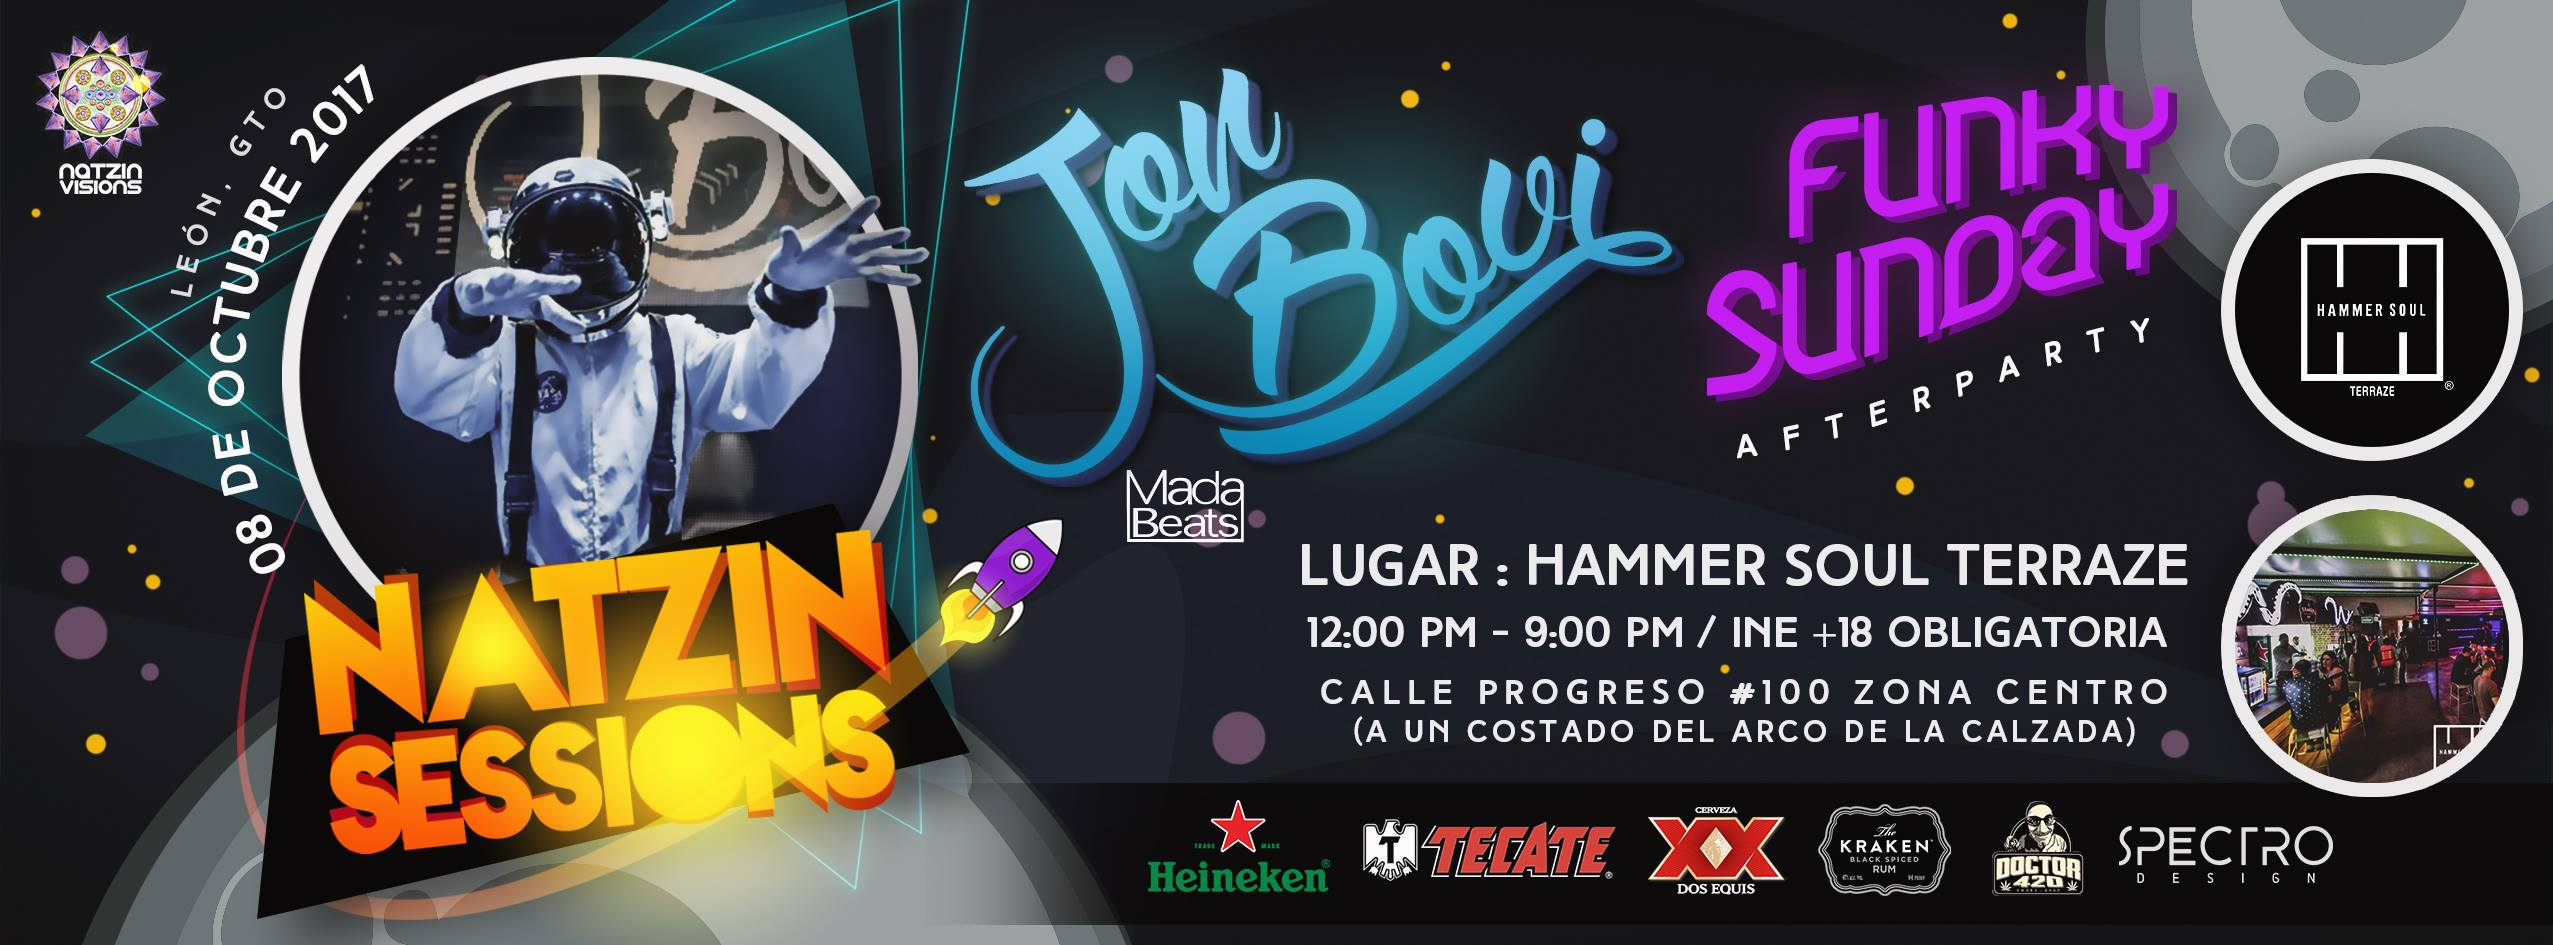 "8 Oct 17  – Natzin Sessions | Jon Bovi ""FunkySunday"" León Gto"